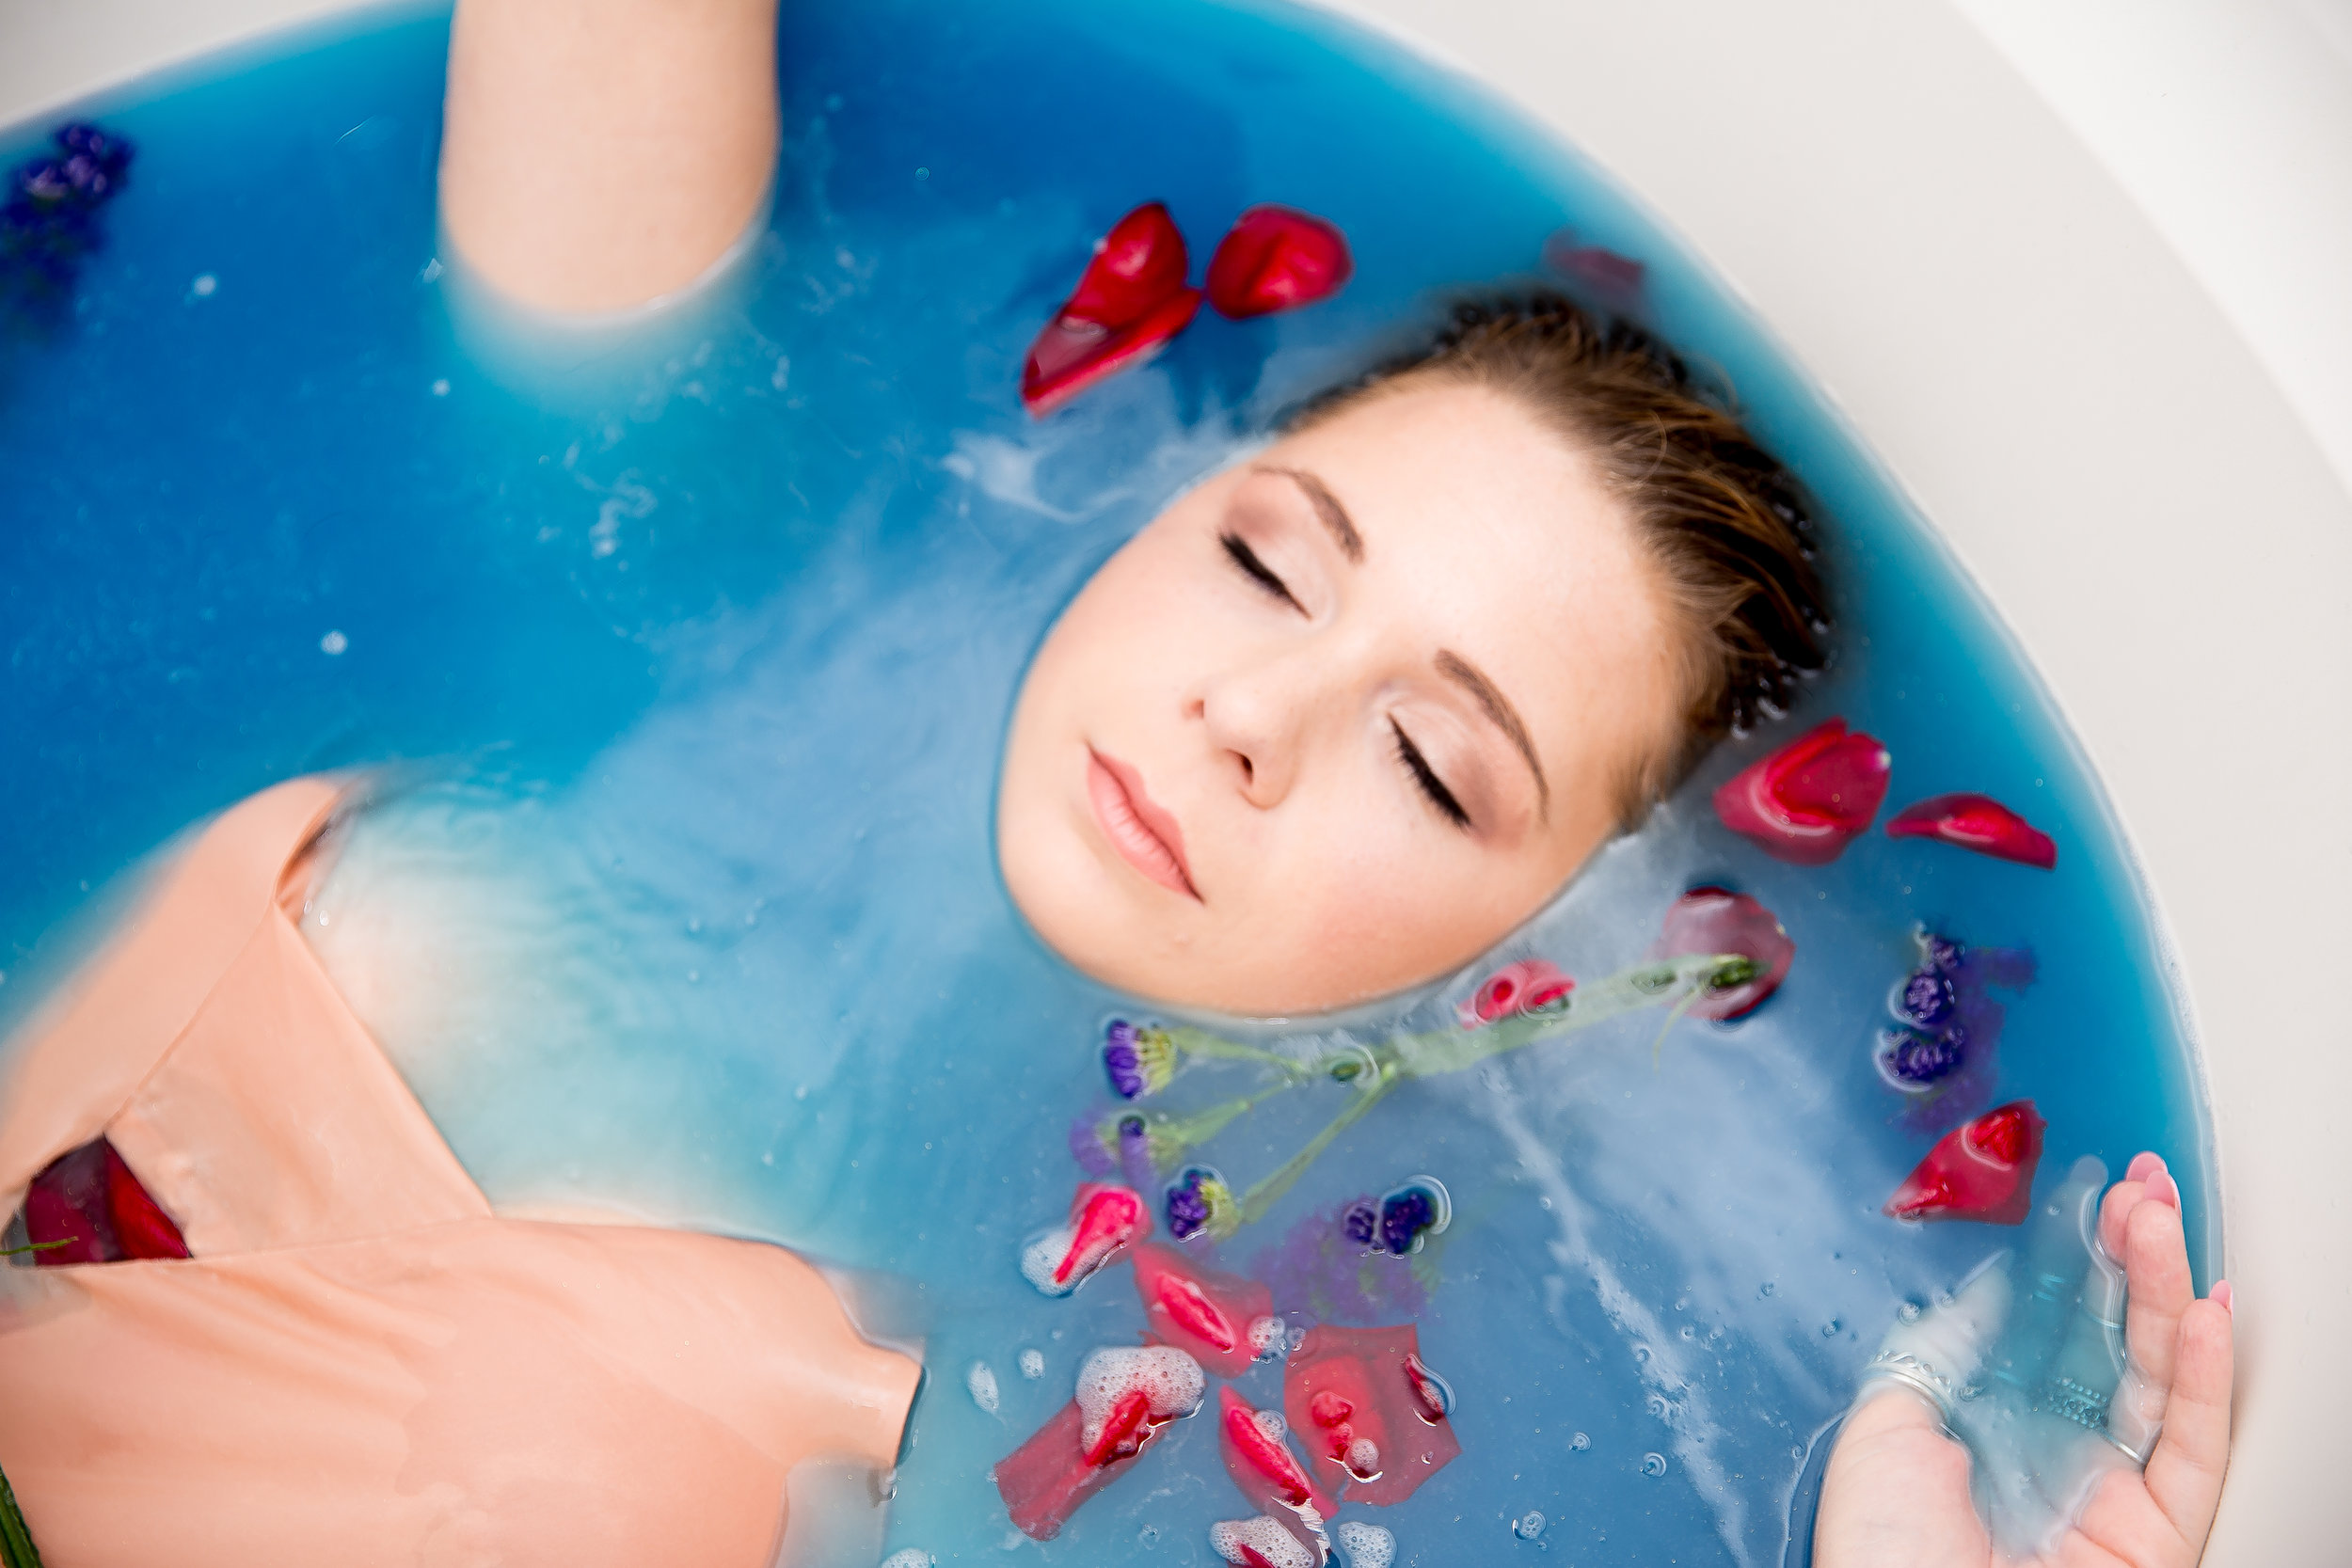 blue bath closeup with rose petals